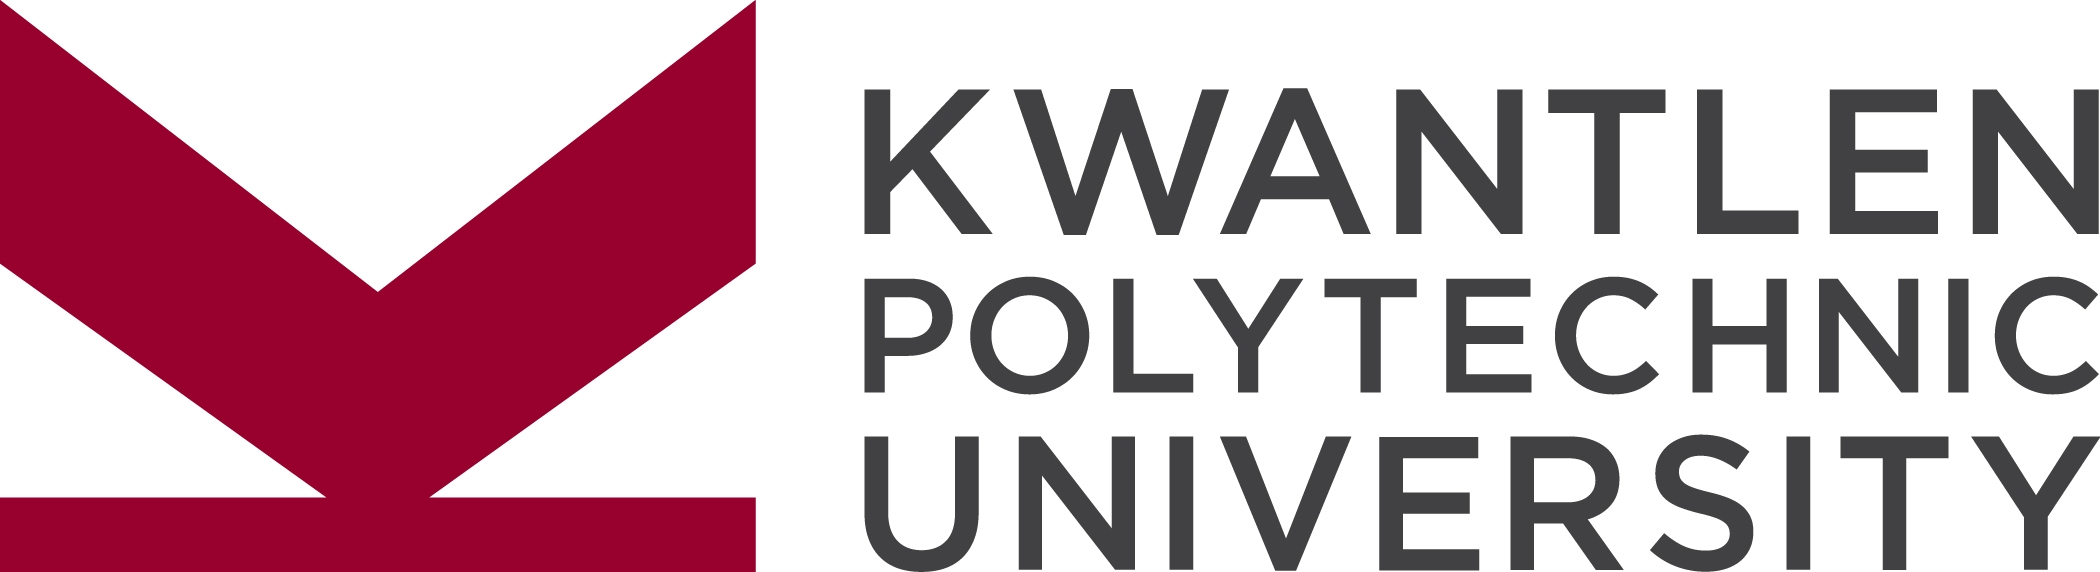 KPU preferred_logo_full20color_rgb1.jpg